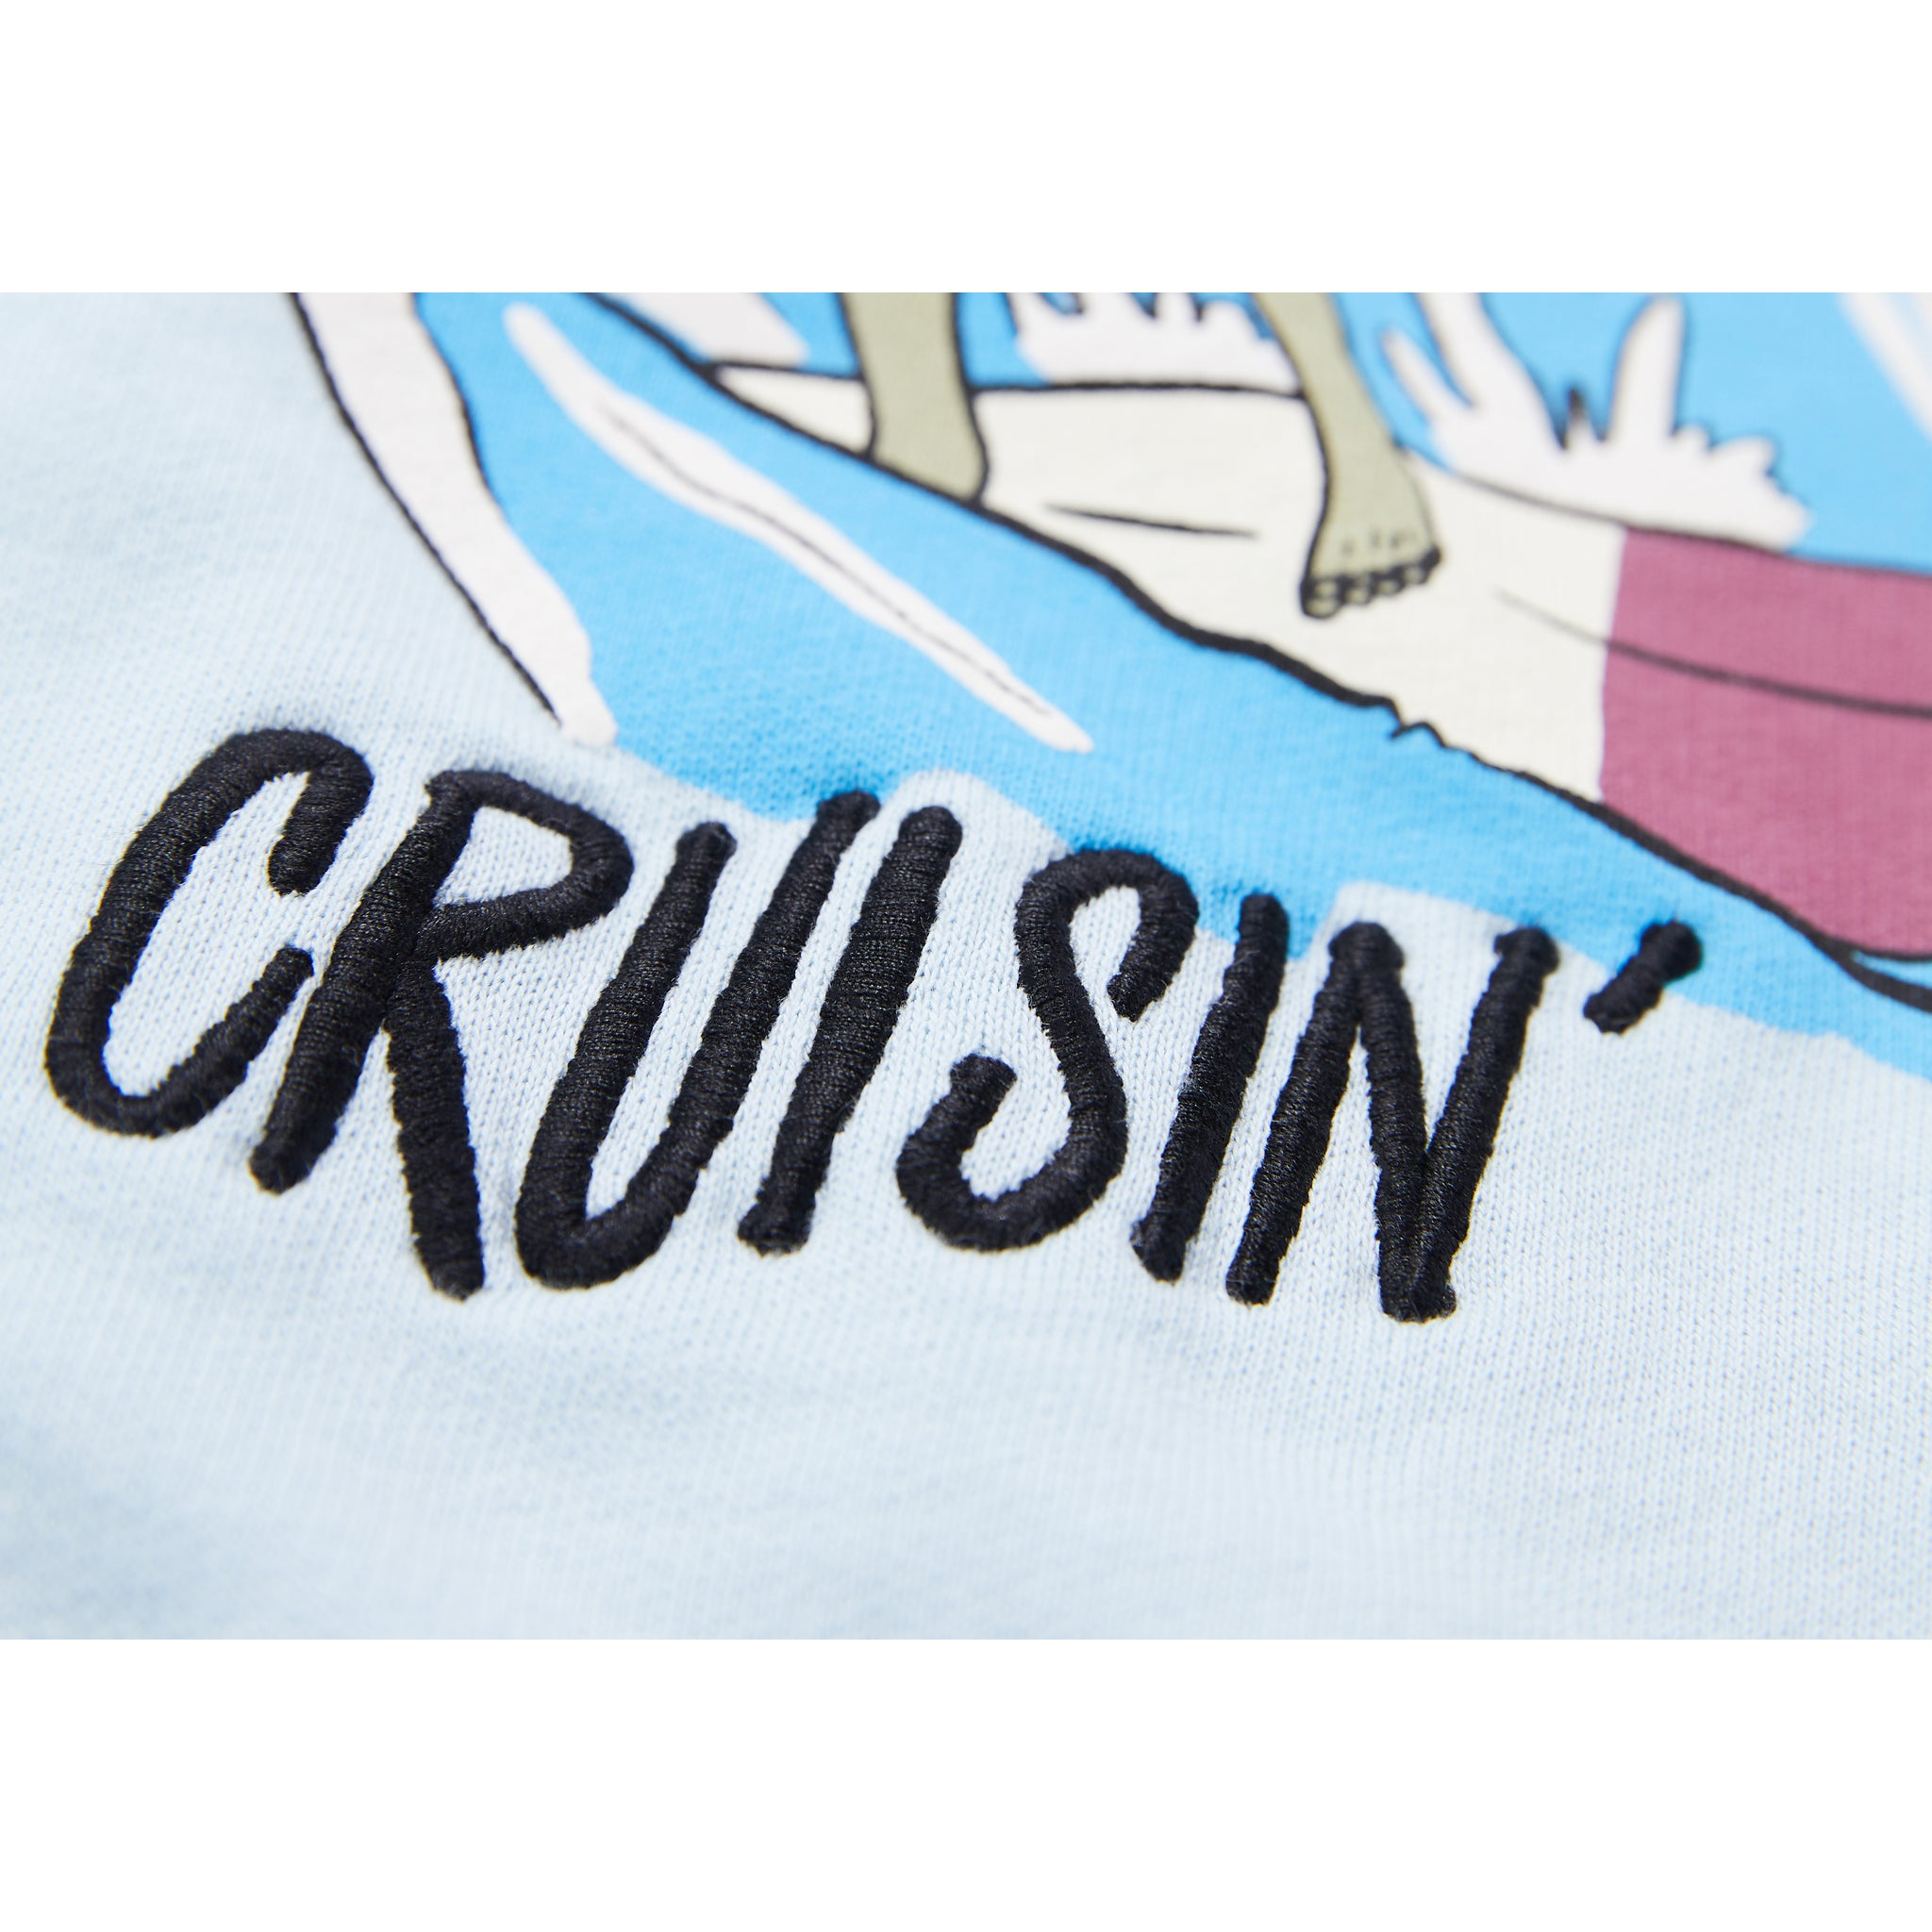 HANK Wave Blue Cruisin - Crew Neck Sweatshirt 3